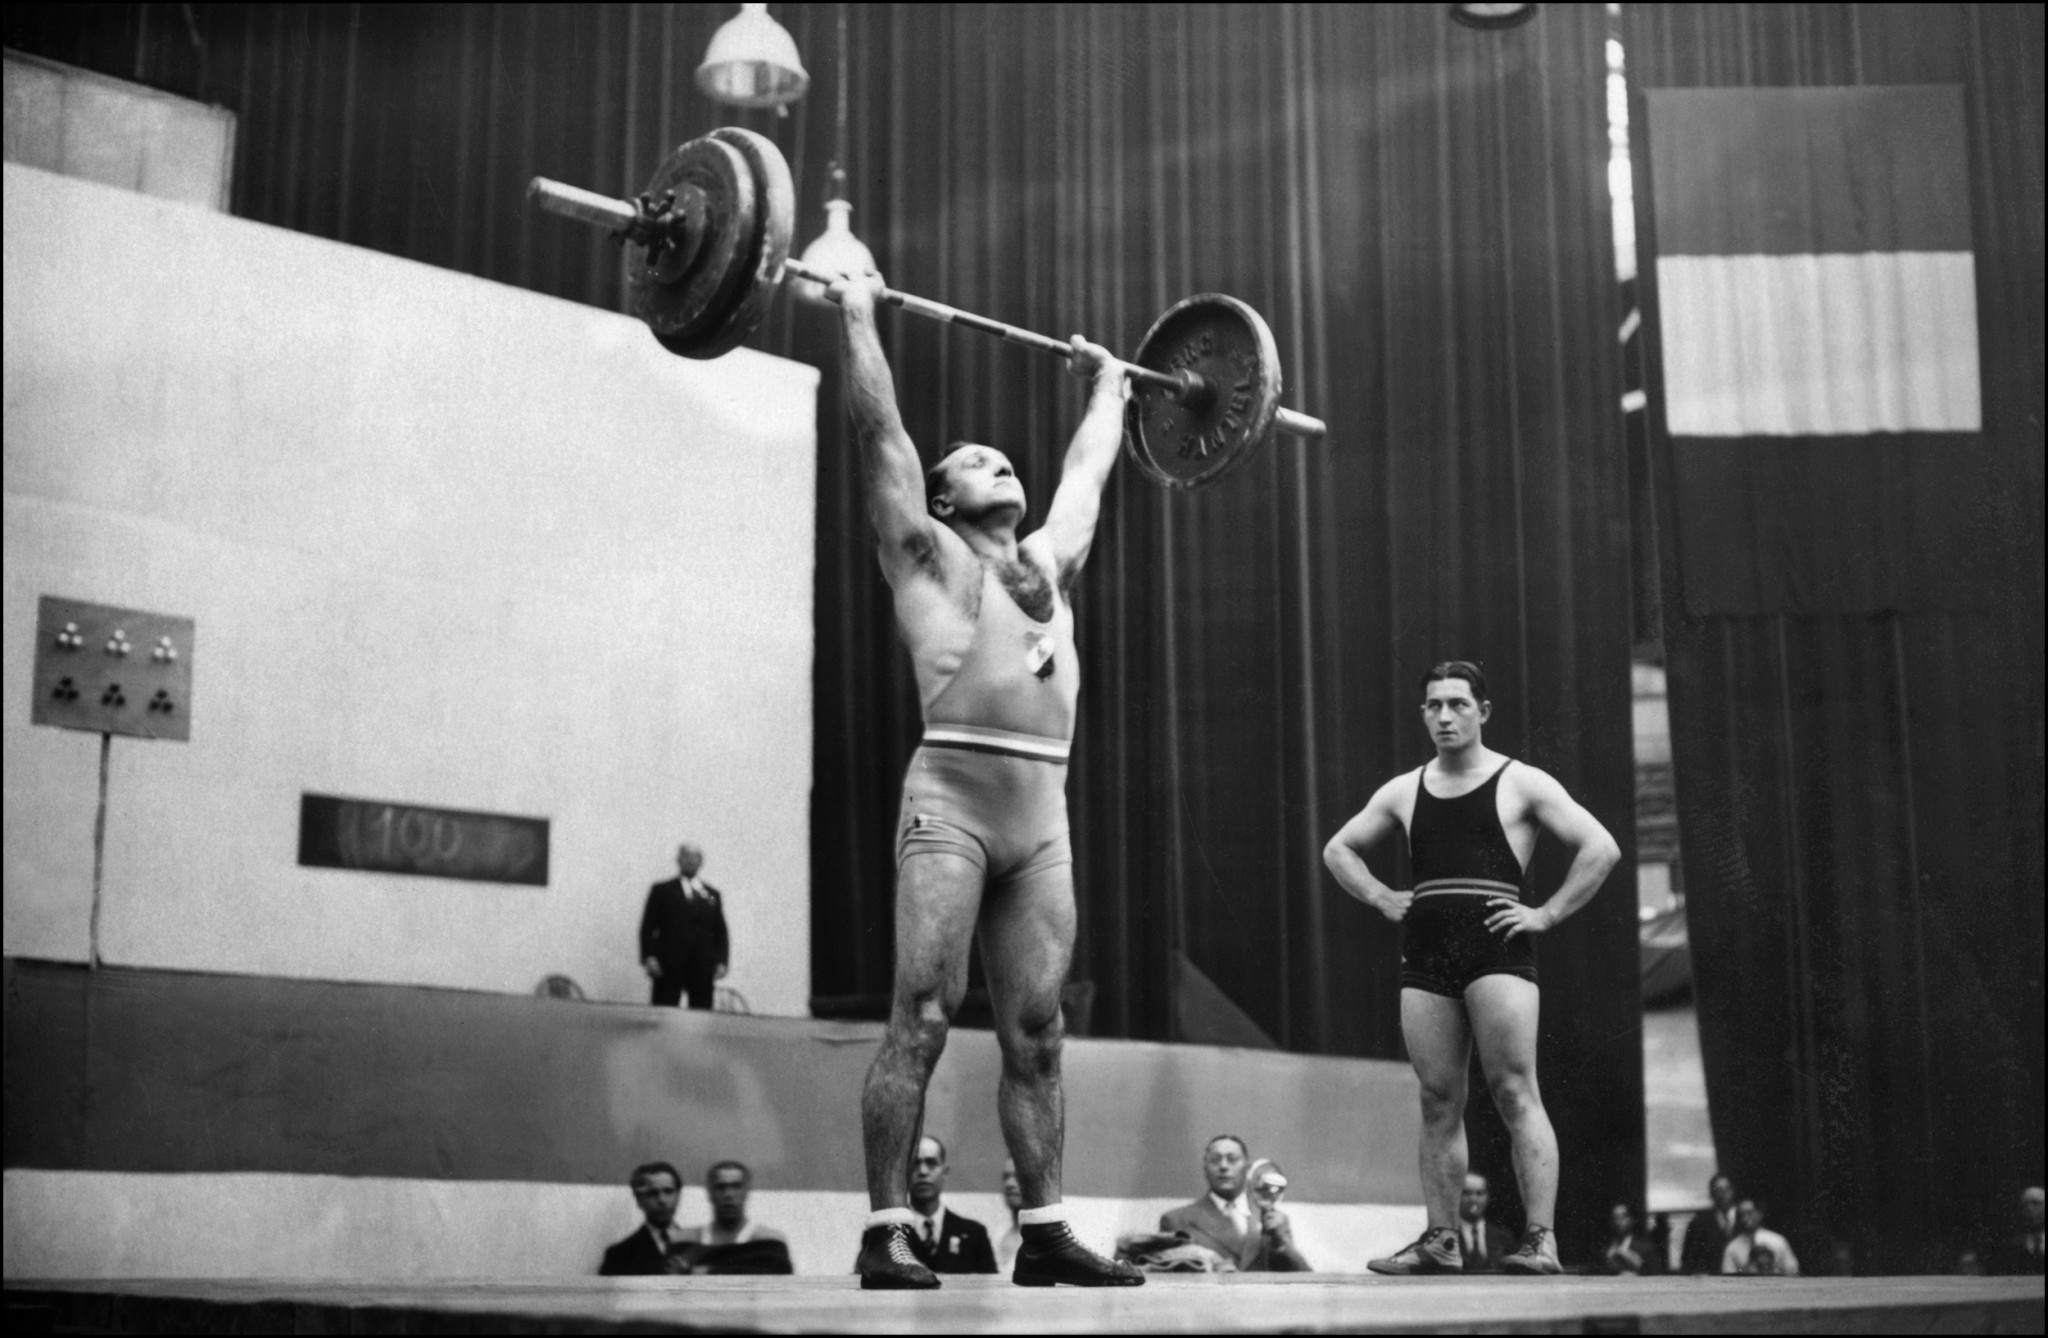 Louis Hostin, best French medal winner in his category, lift weight, 15 September 1937. After taking silver in the Light Heavyweight at the 1928 Olympics in Amsterdam, Hostin won two gold medals at the 1932 los Angeles Olympics and 1936 Berlin Olympics. He was also European champion in 1930 and 1935 and world vice-champion in 1937. Photo credit AFP/AFP via Getty Images.